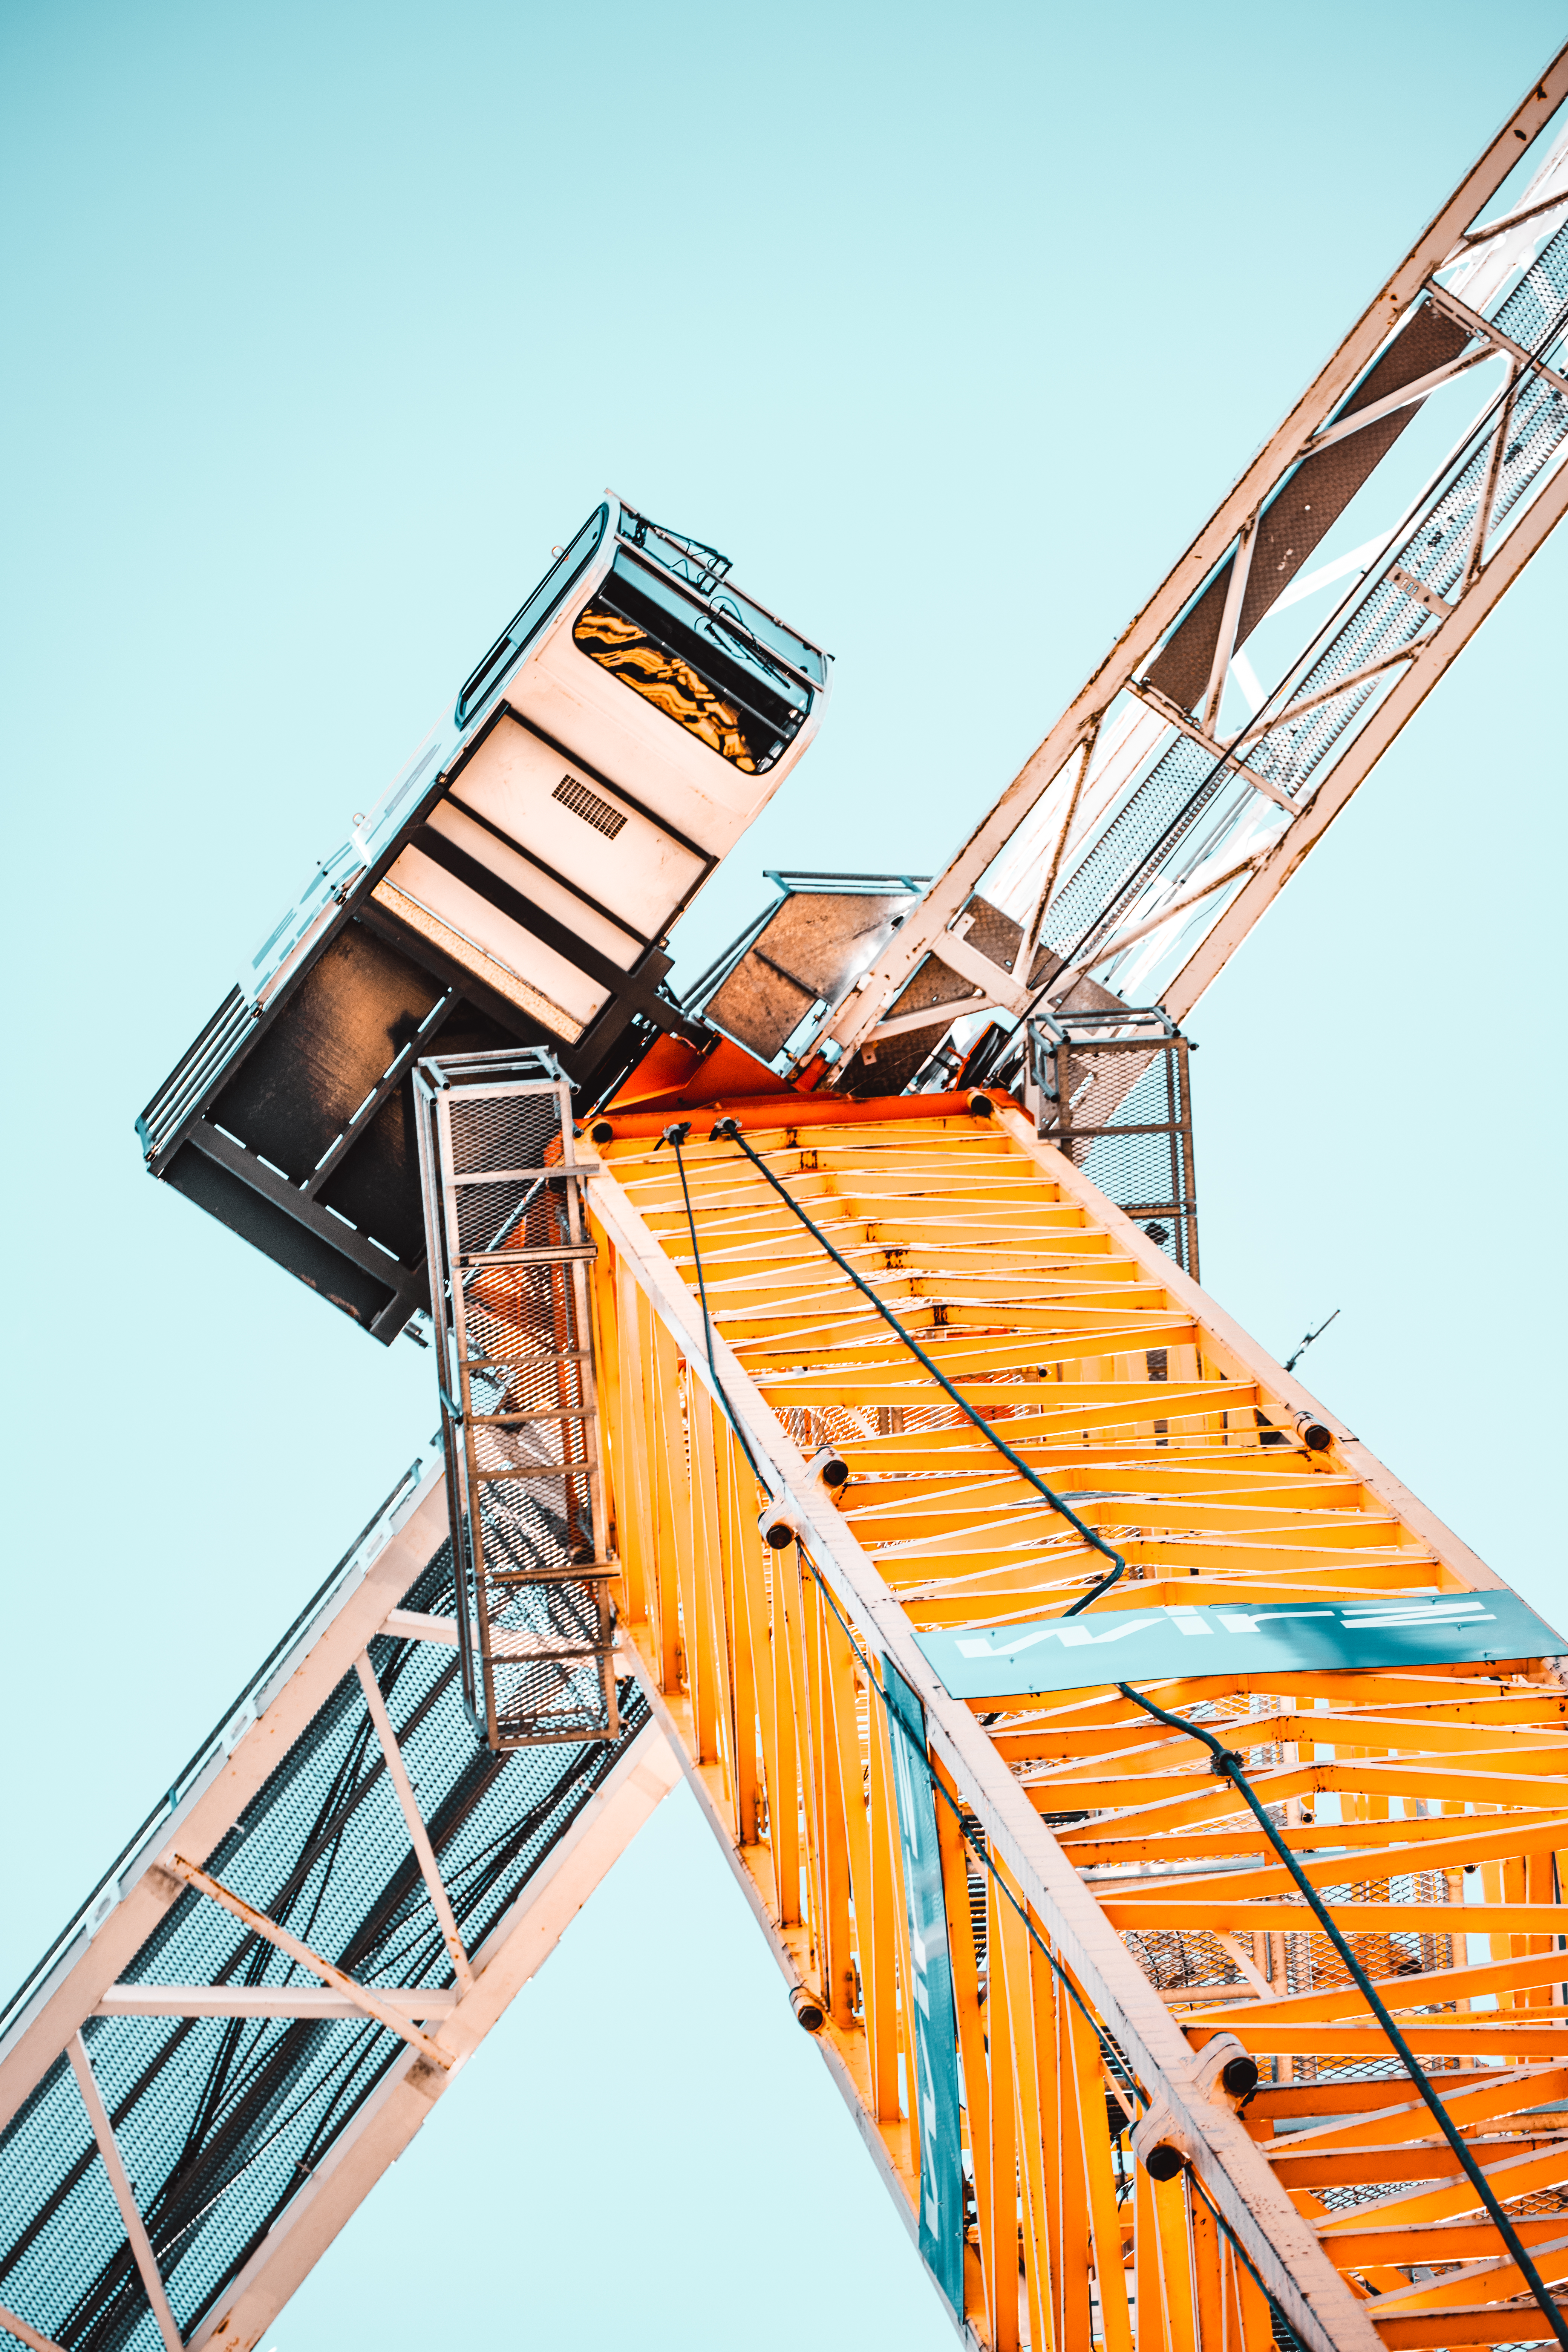 Low Angle Photography of Tower Crane